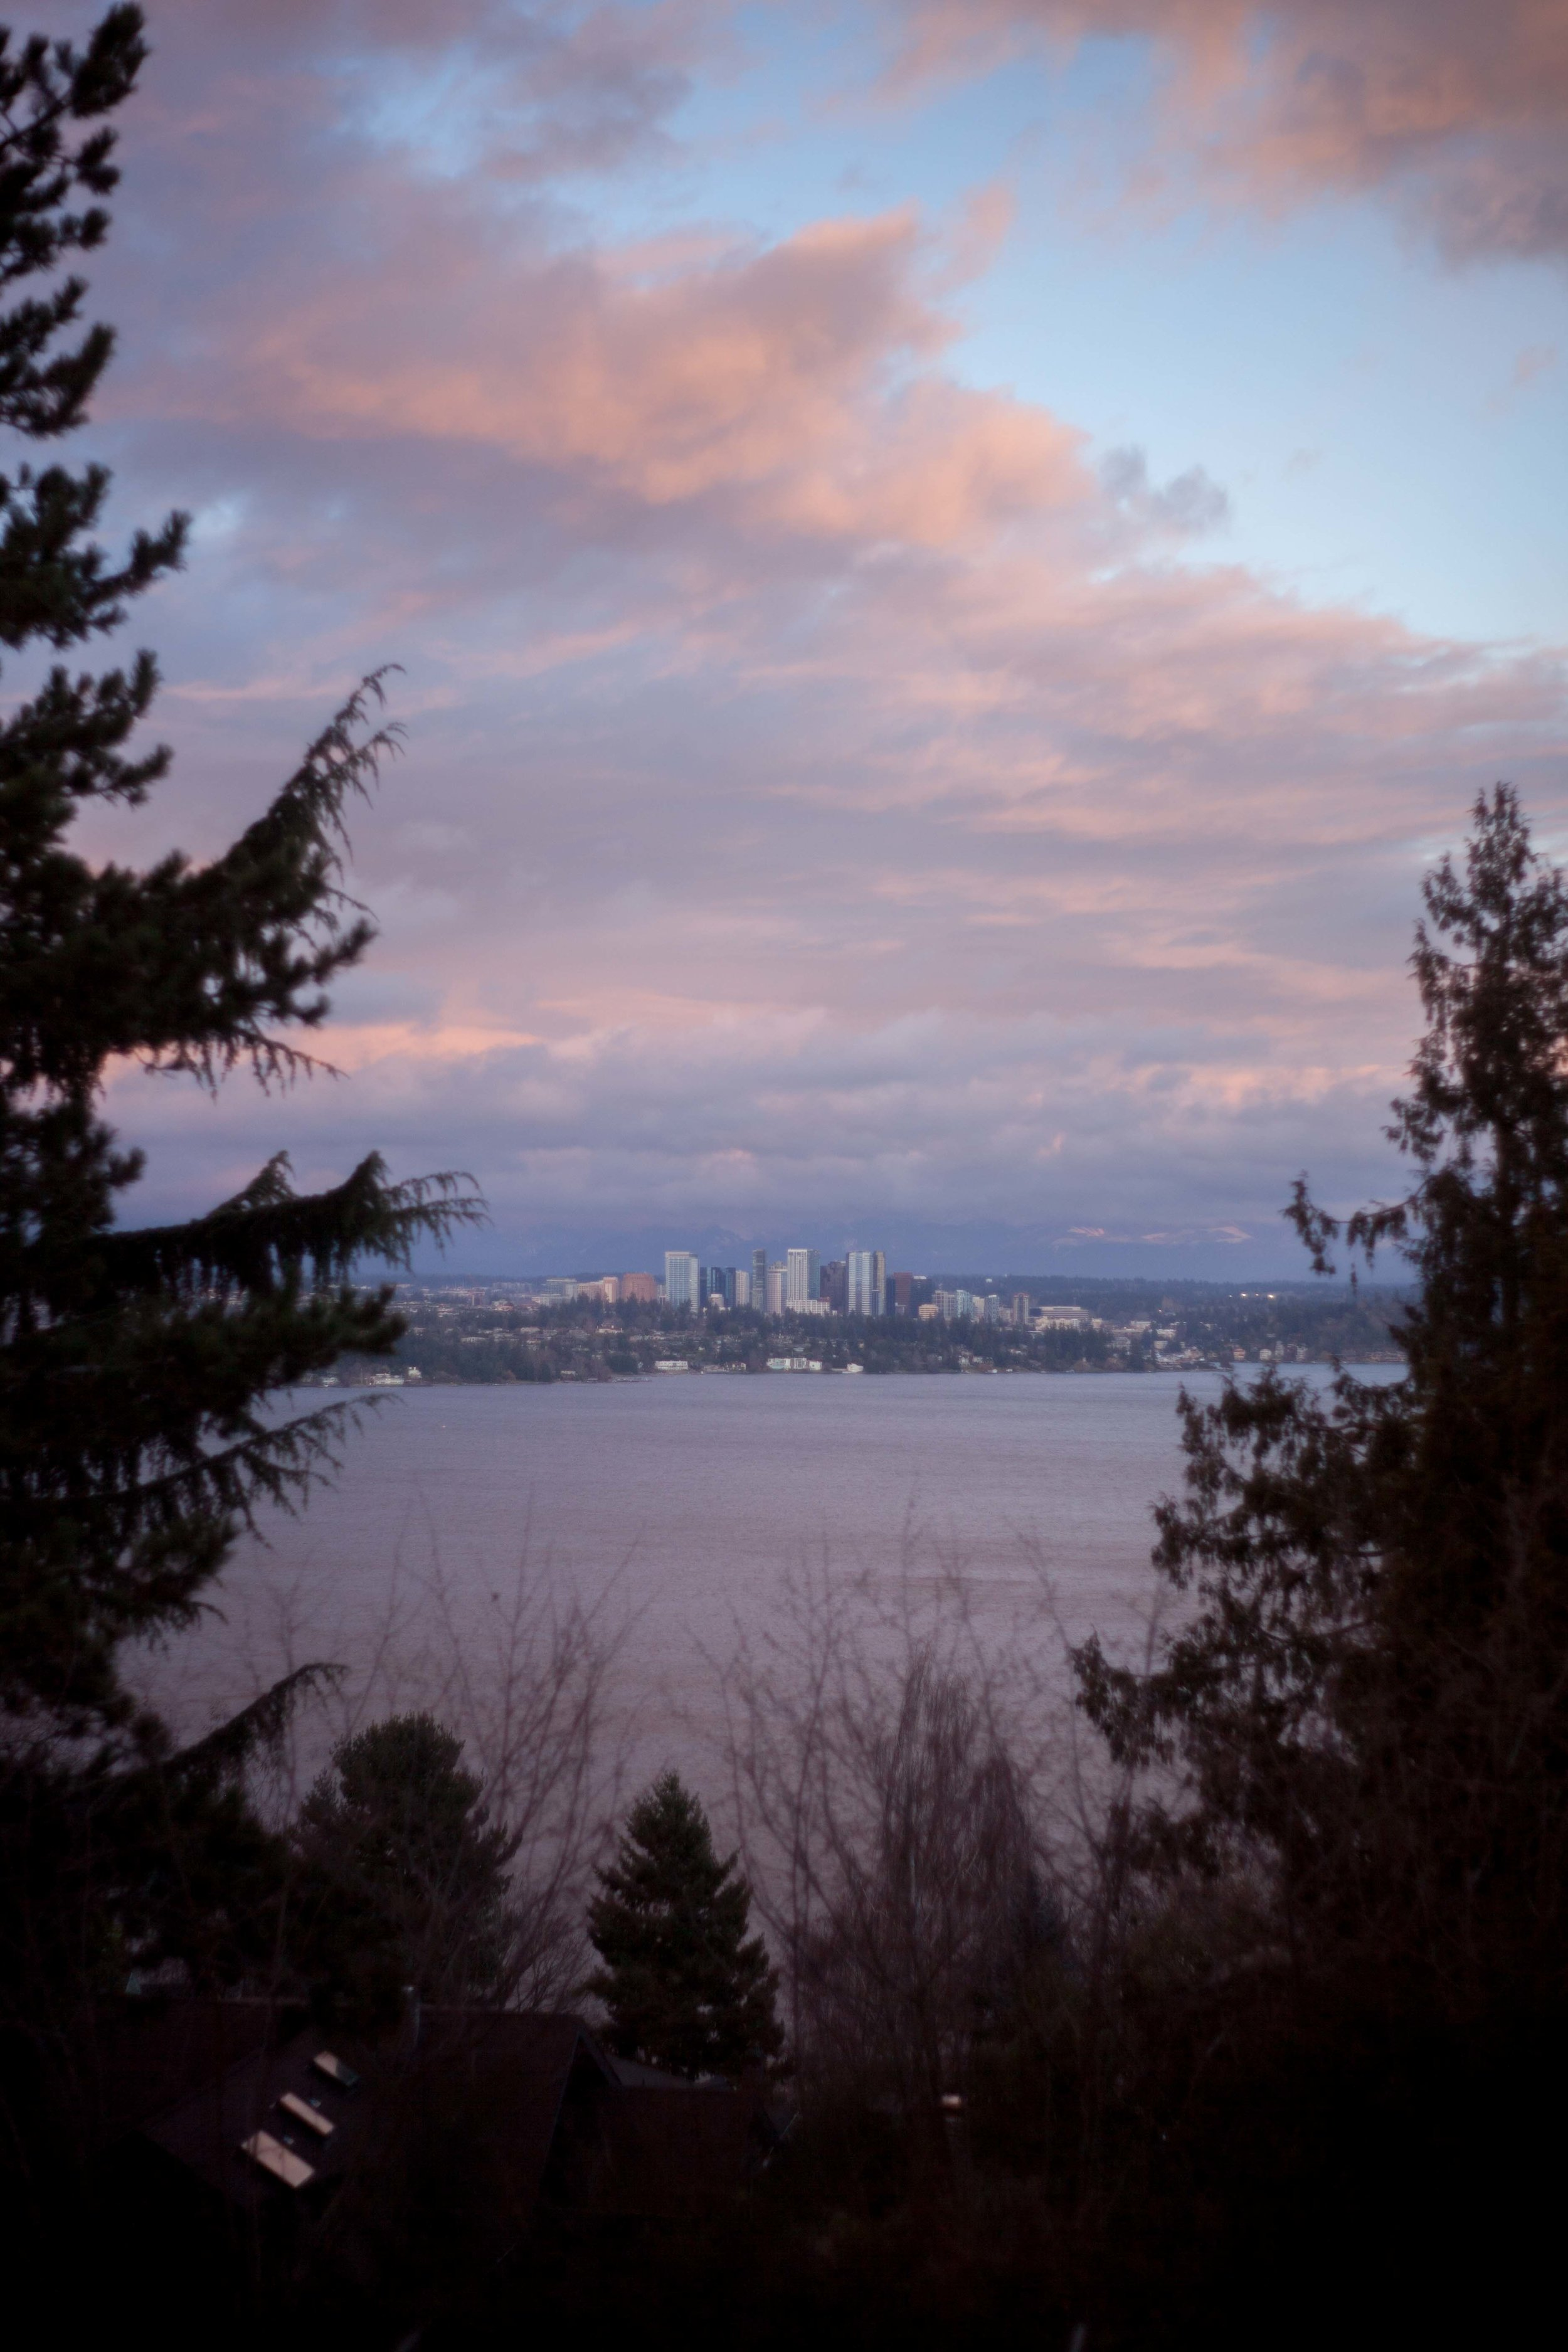 The view from Seattle towards Bellevue. I love Seattle